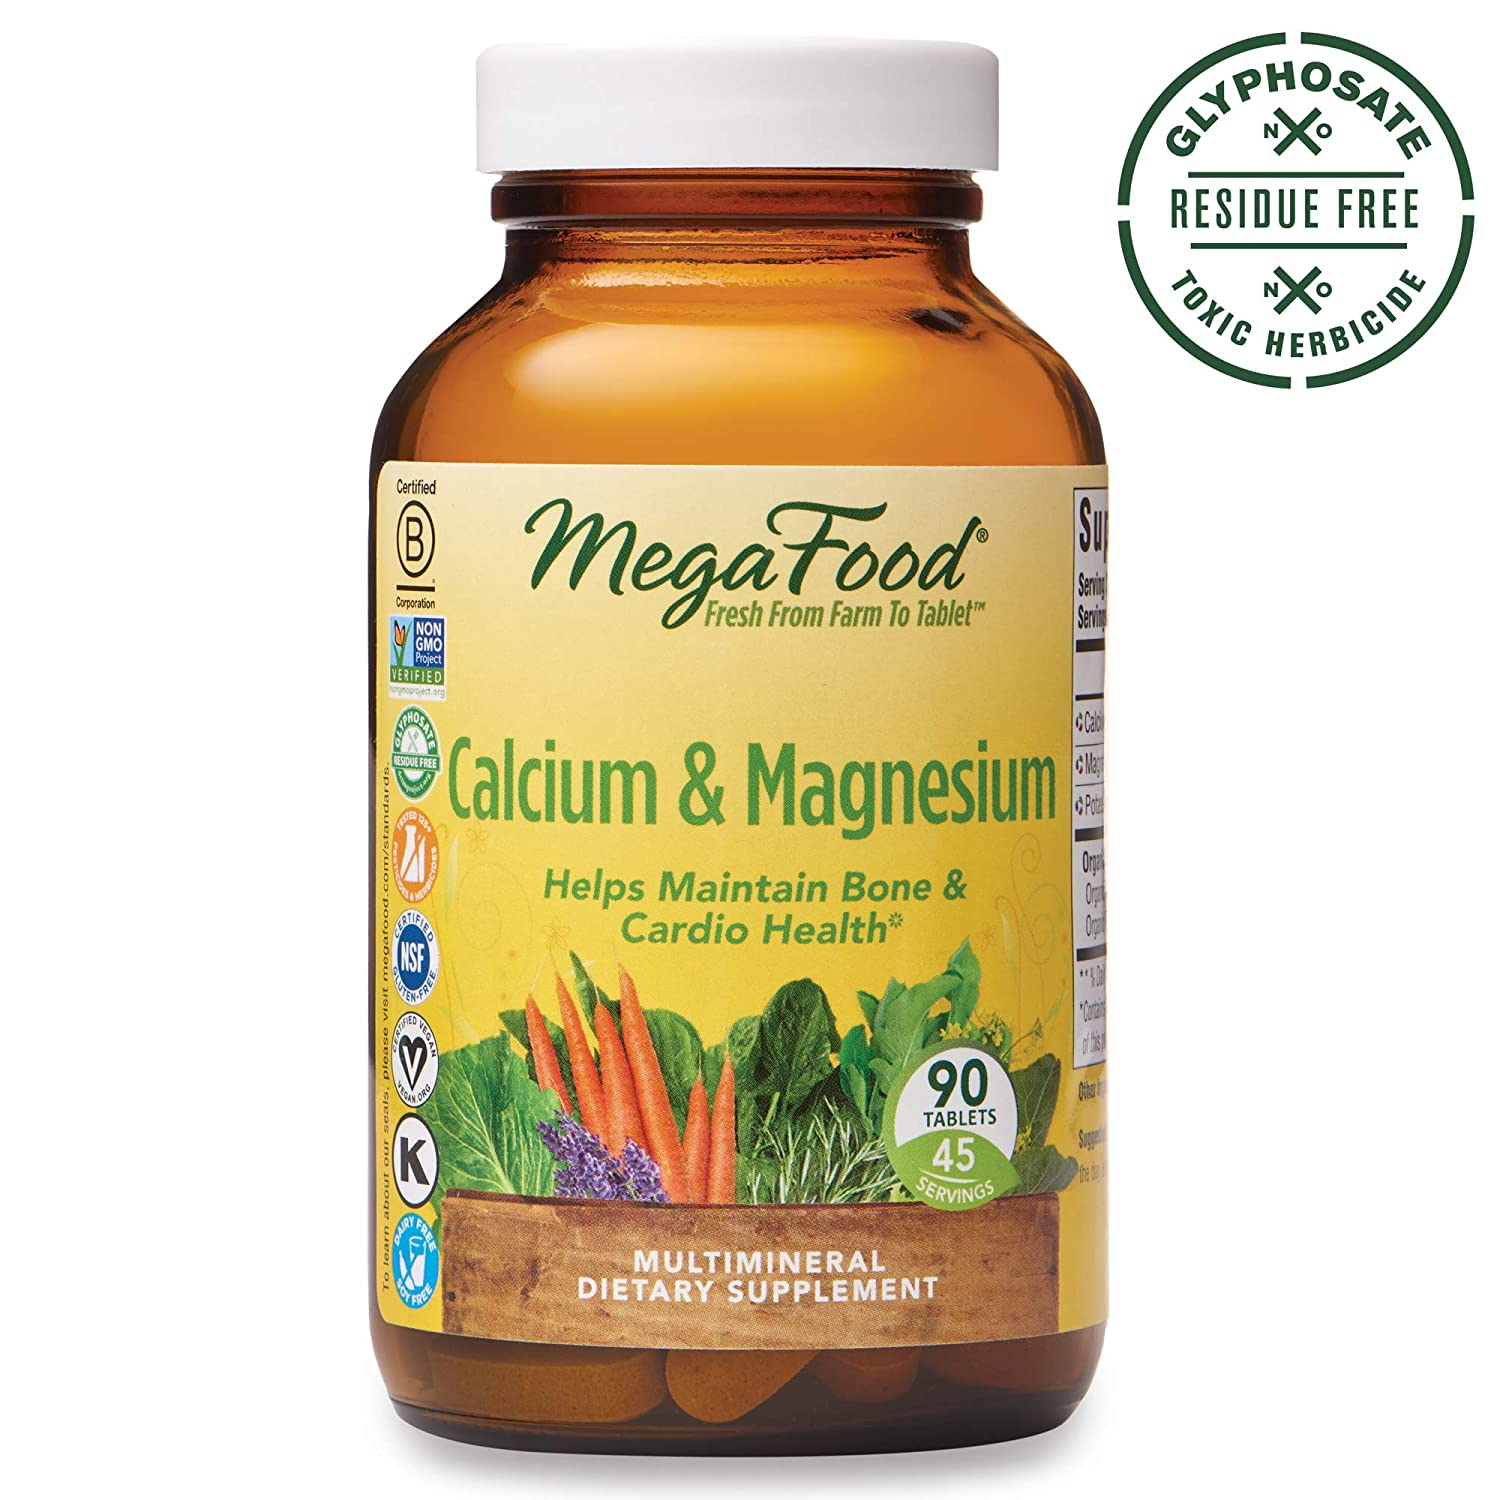 MegaFood, Calcium Magnesium, Helps Maintain Bone and Cardiovascular Health, Vitamin and Dietary Supplement, Gluten Free, Vegan, 90 Tablets 45 Servings FFP